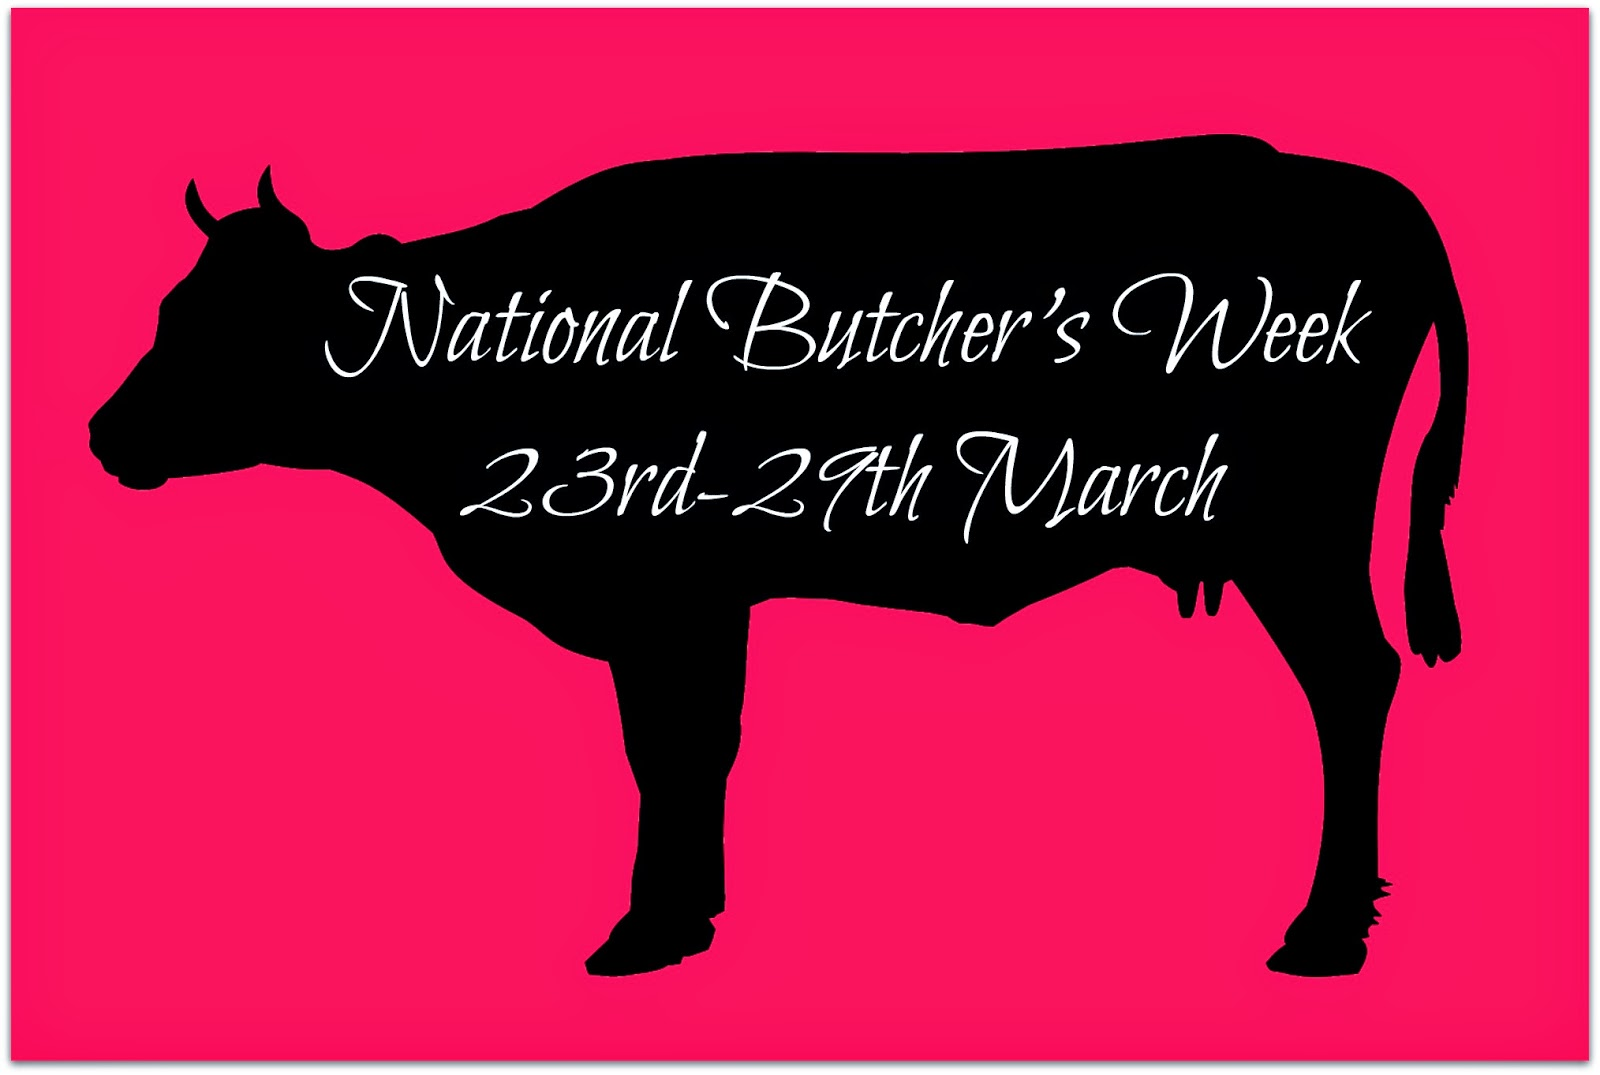 National Butcher's Week